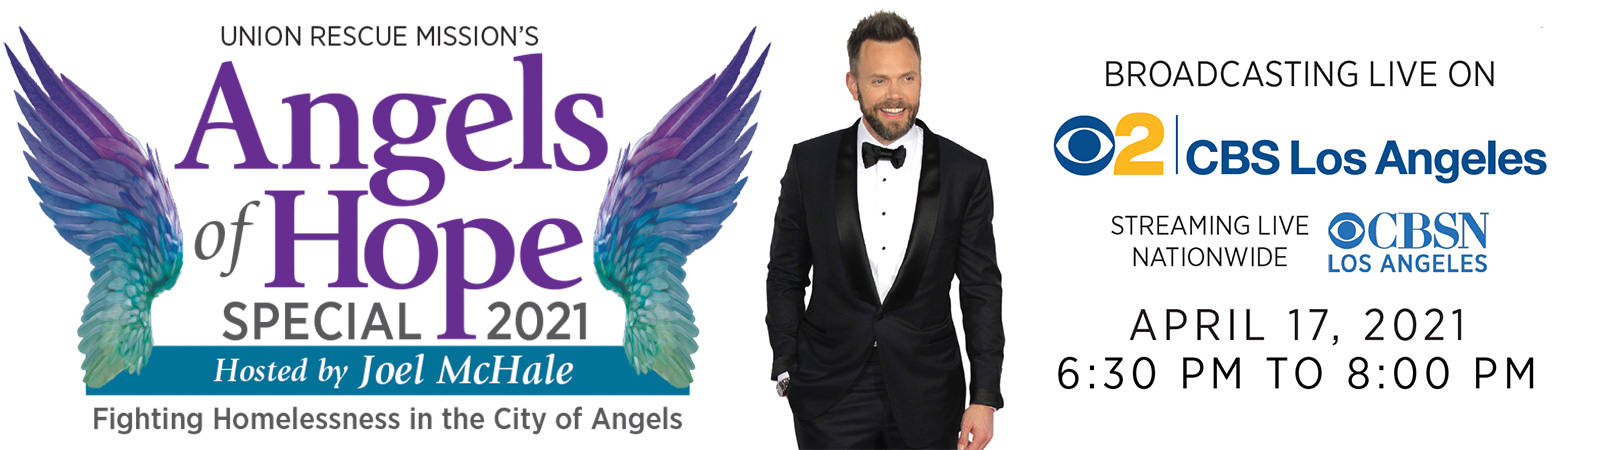 Angels of Hope Special - 2021 -- COPY 10